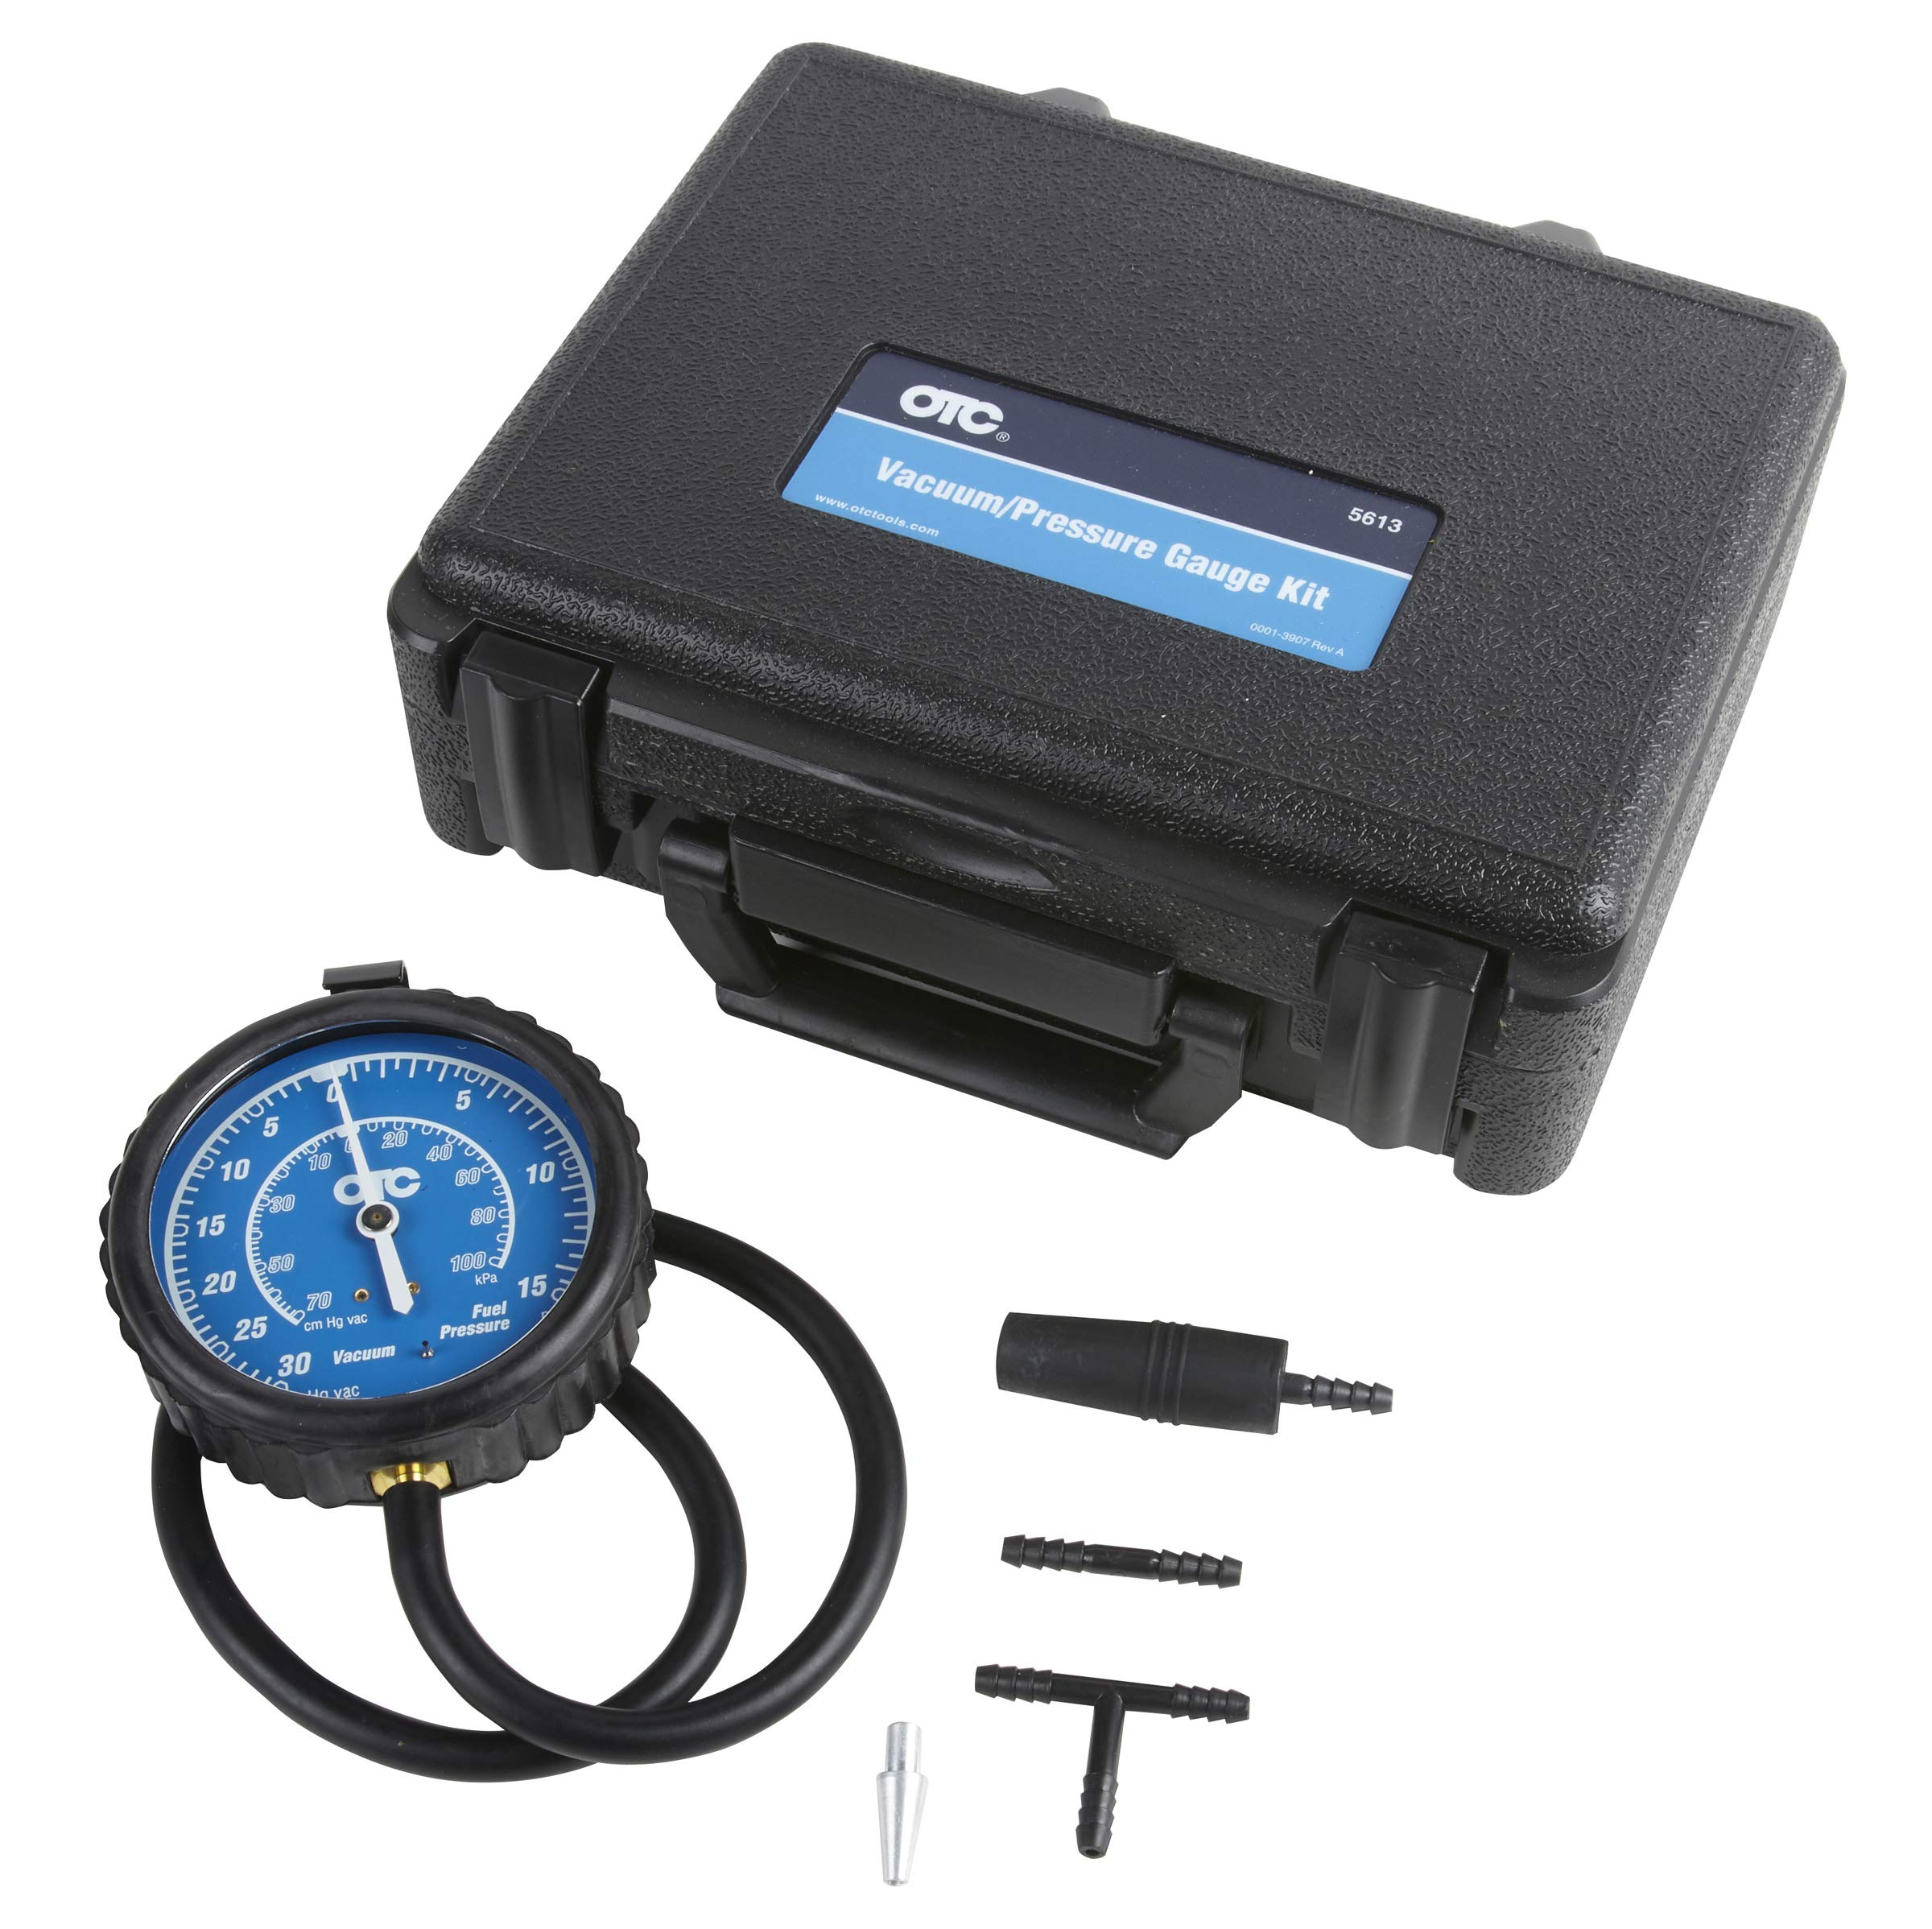 MILLION PARTS Fuel Injection Pump Pressure Tester Manometer Car Auto Gauge Kit